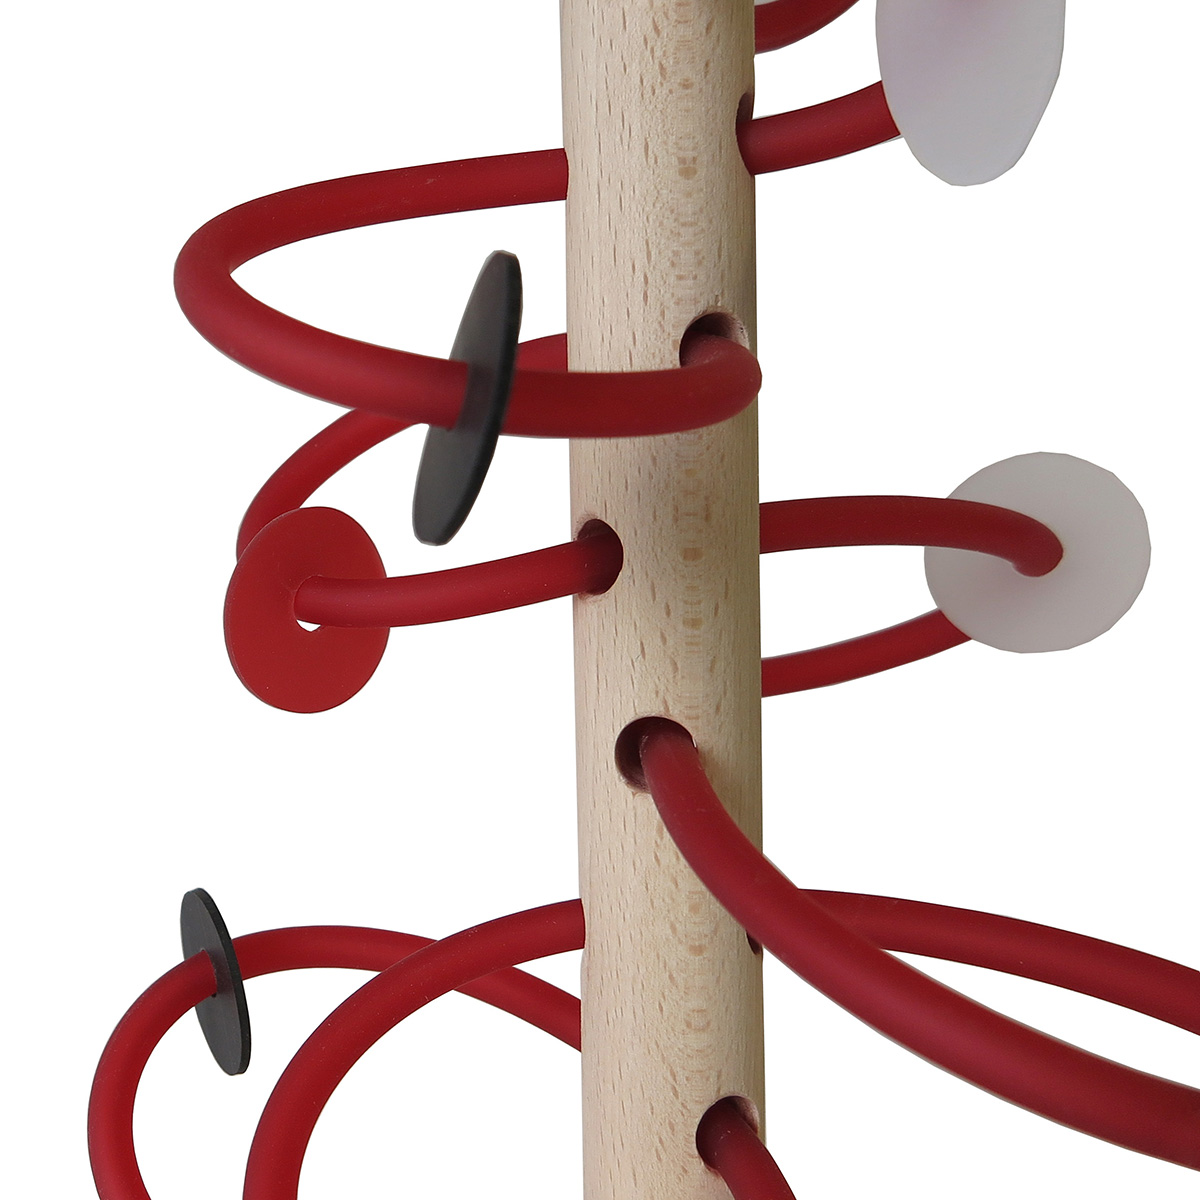 albero-natale-design-christmas-tree-treetube-red-decorations